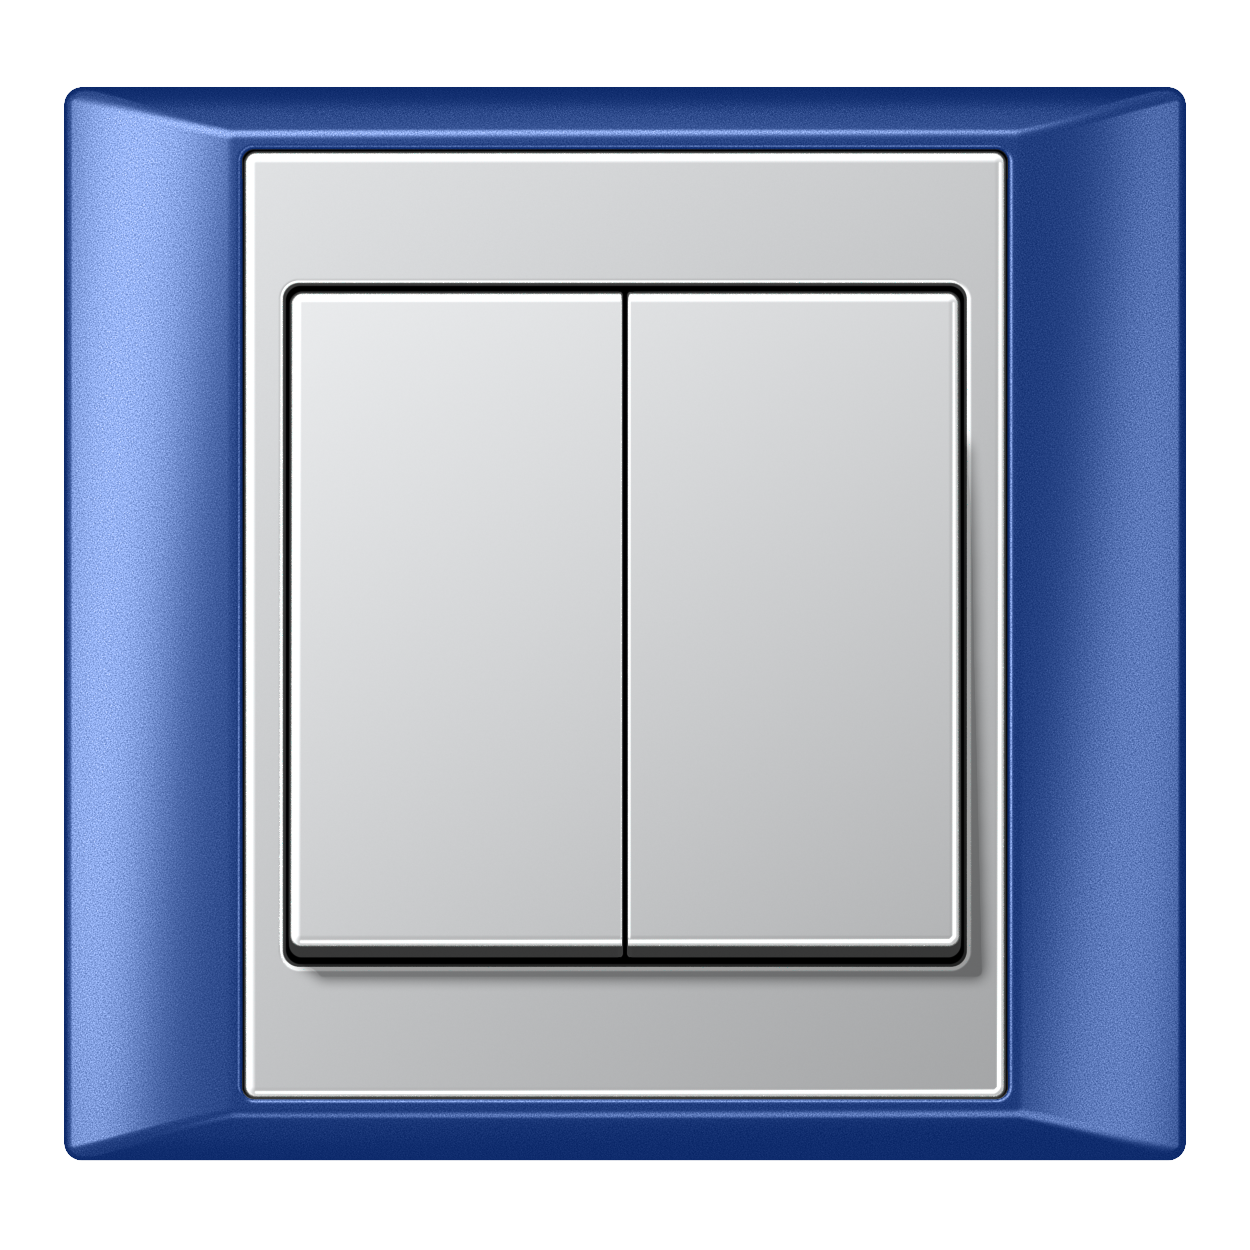 JUNG_Aplus_blue_aluminium_2-gang-switch